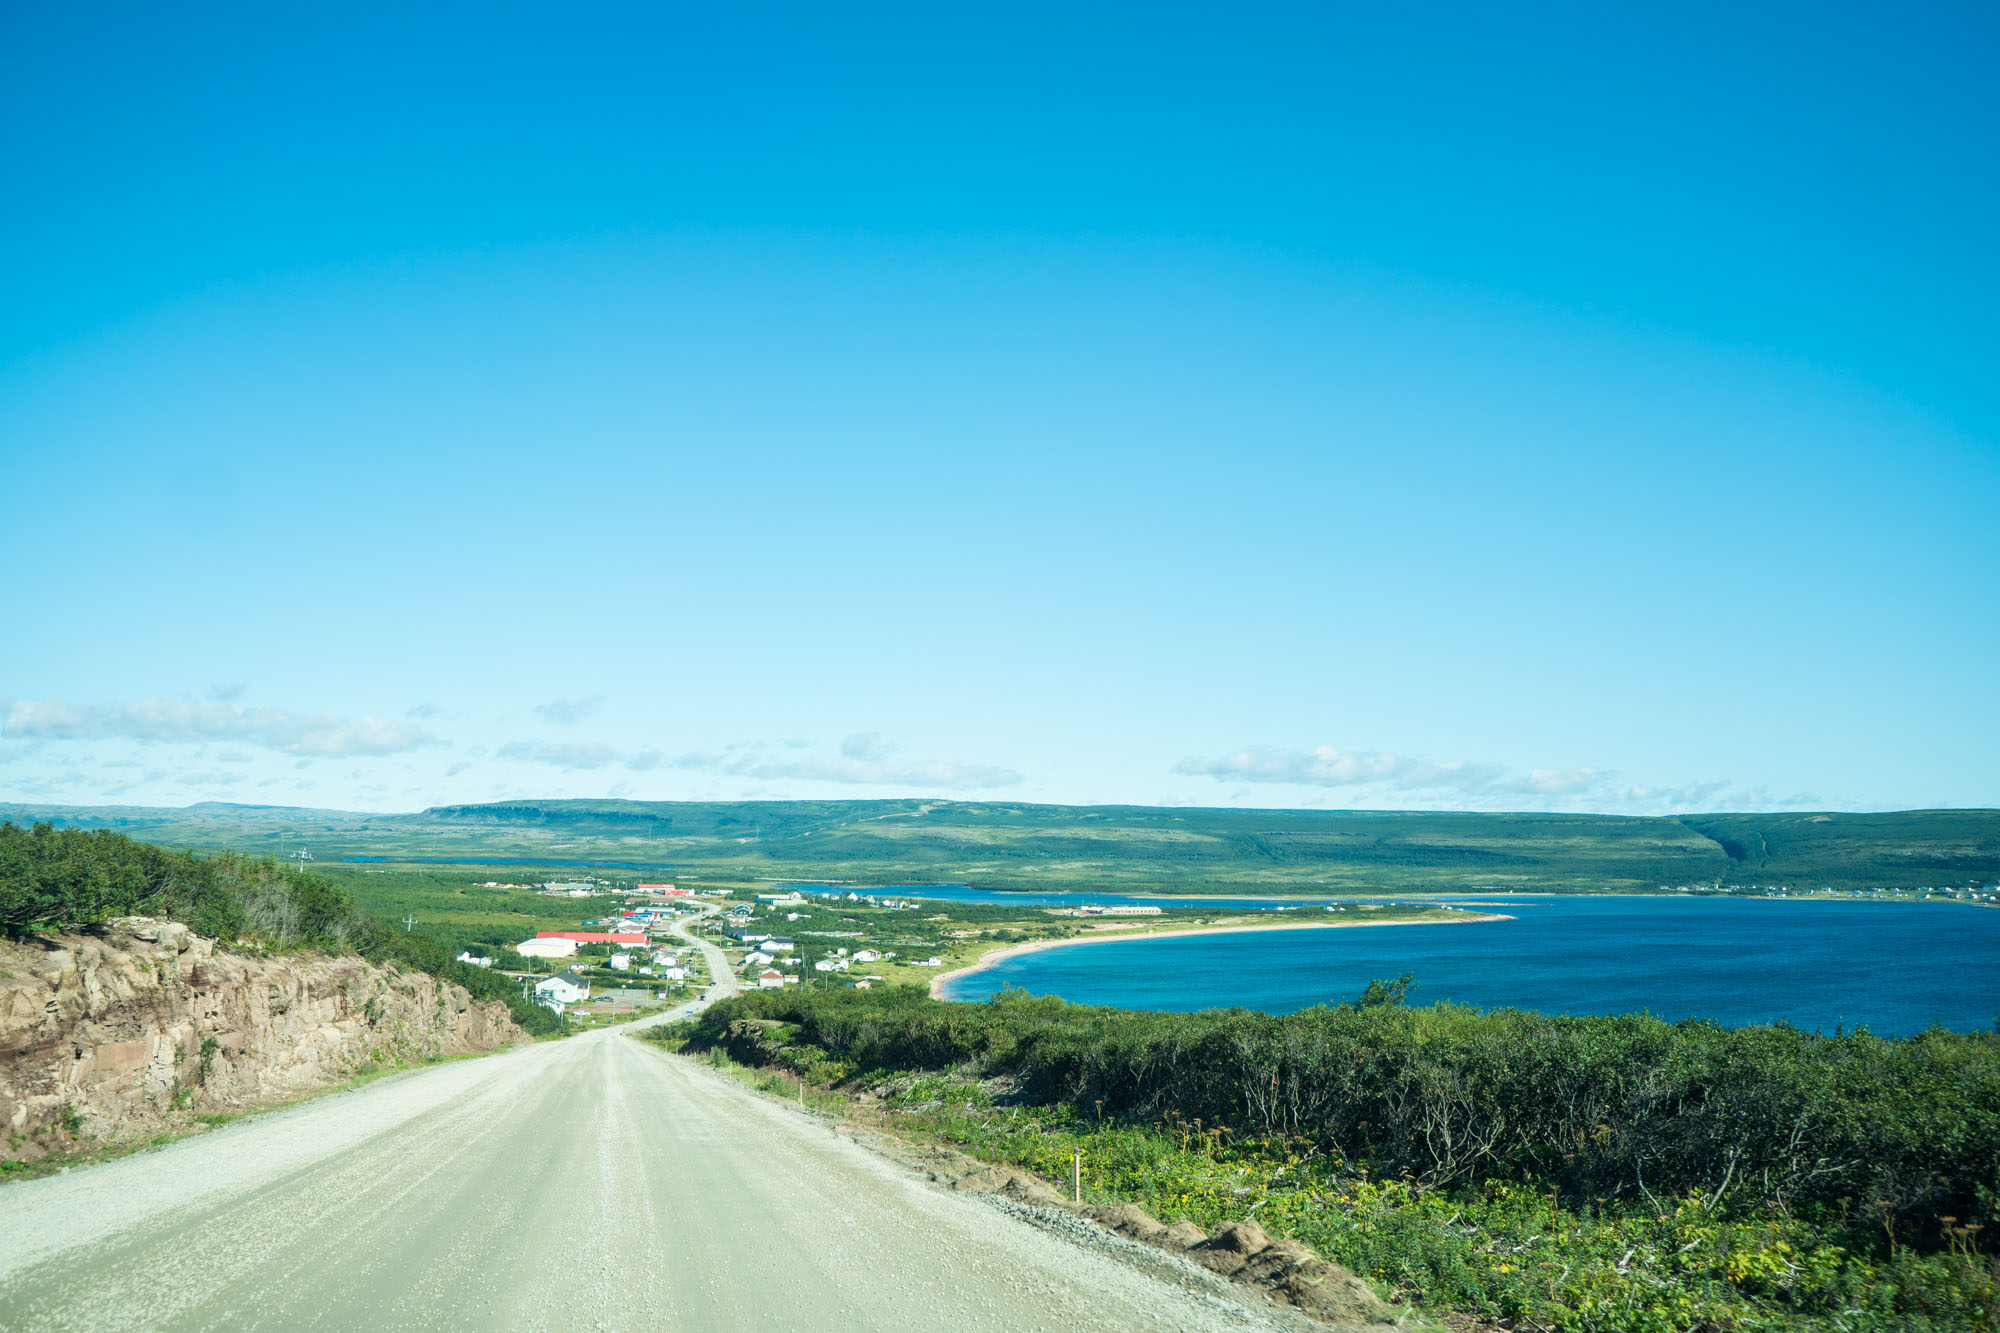 First view of Labrador